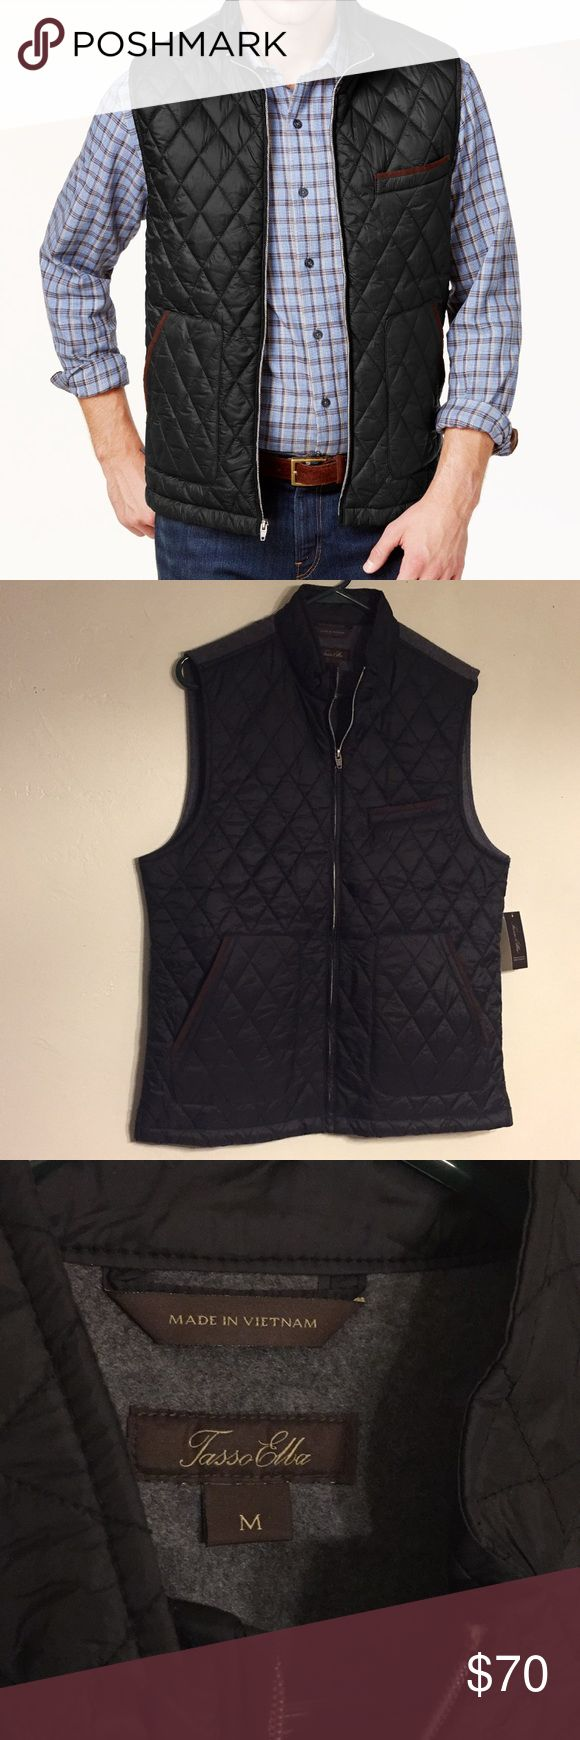 Tasso Elba quilted vest, men's size M, NWT Tasso Elba quilted vest, men's size M, NWT, great condition, dark navy blue front with brown details, gray cotton back, great for all year long Tasso Elba Jackets & Coats Vests